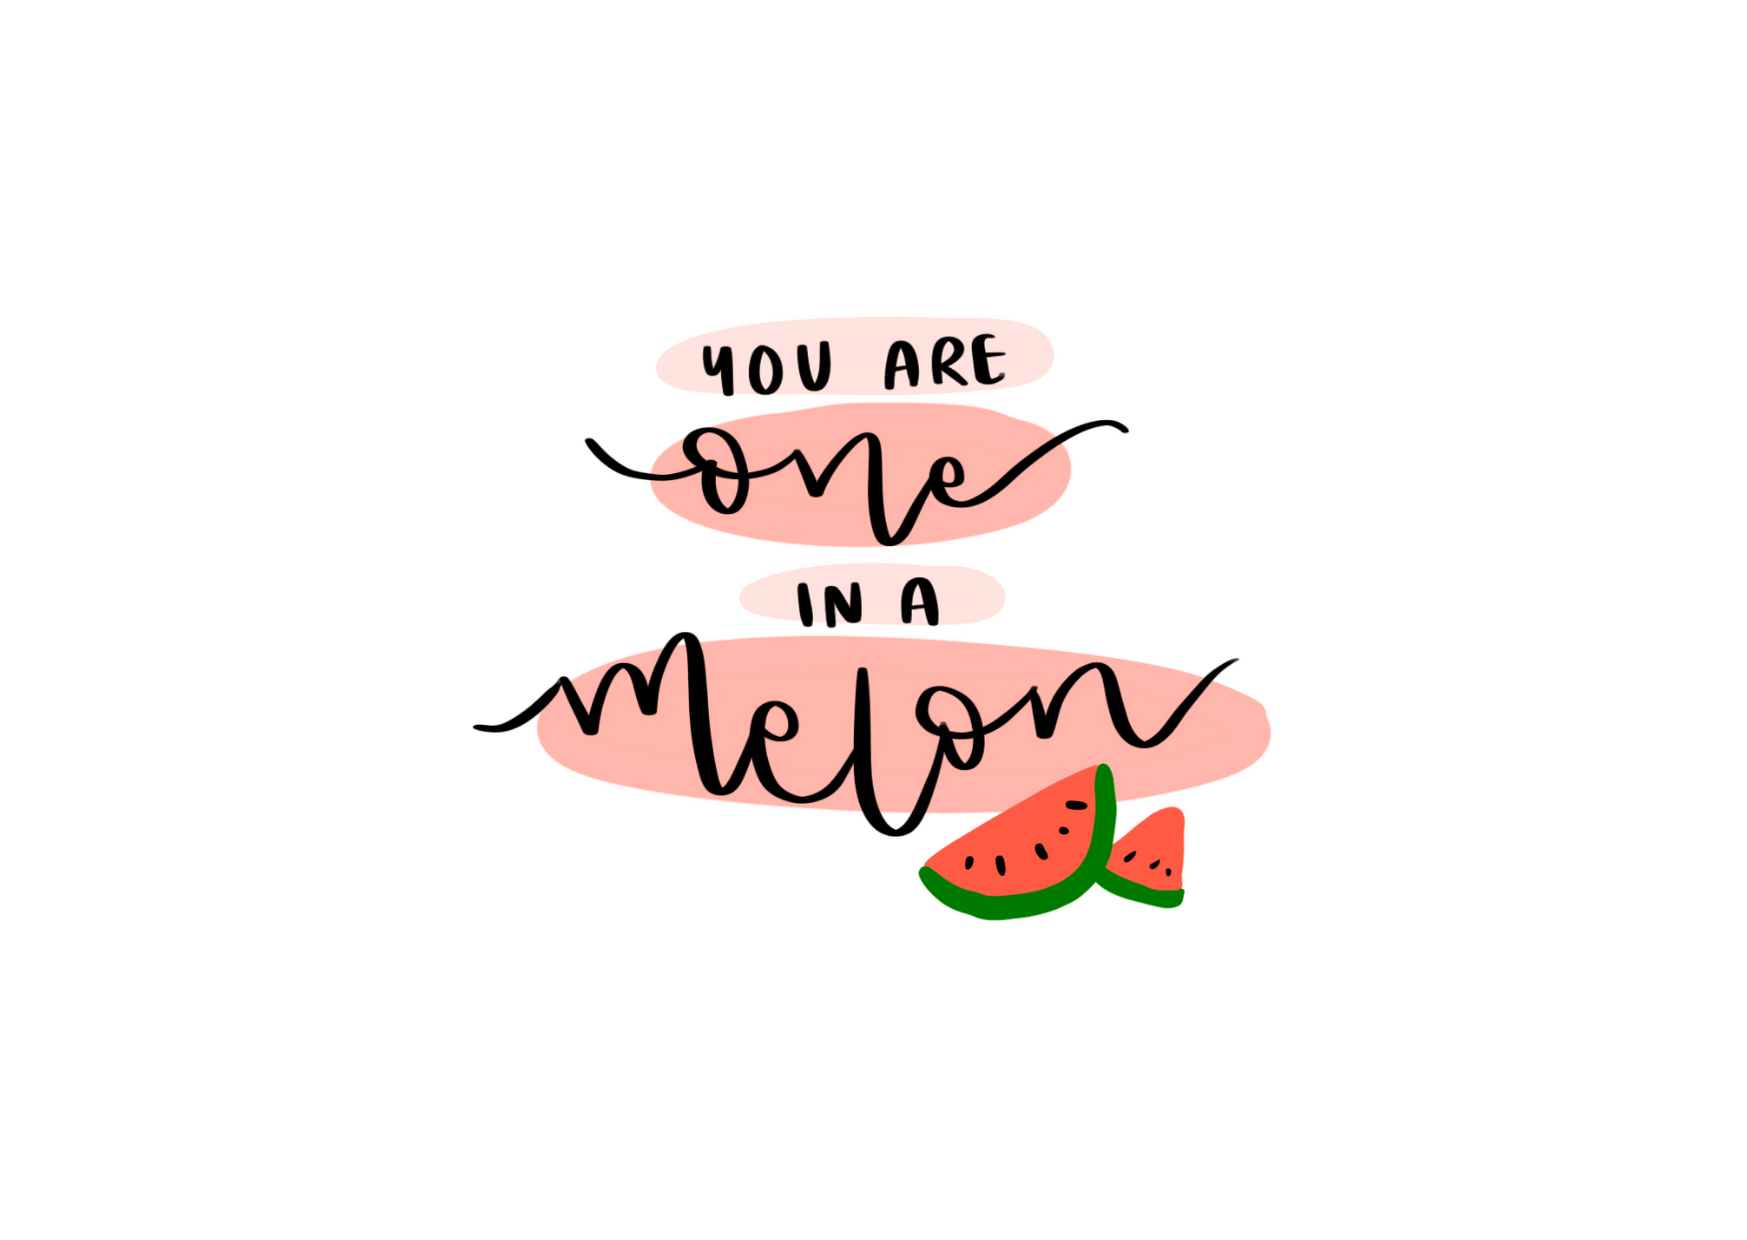 One In A Melon - from me to you